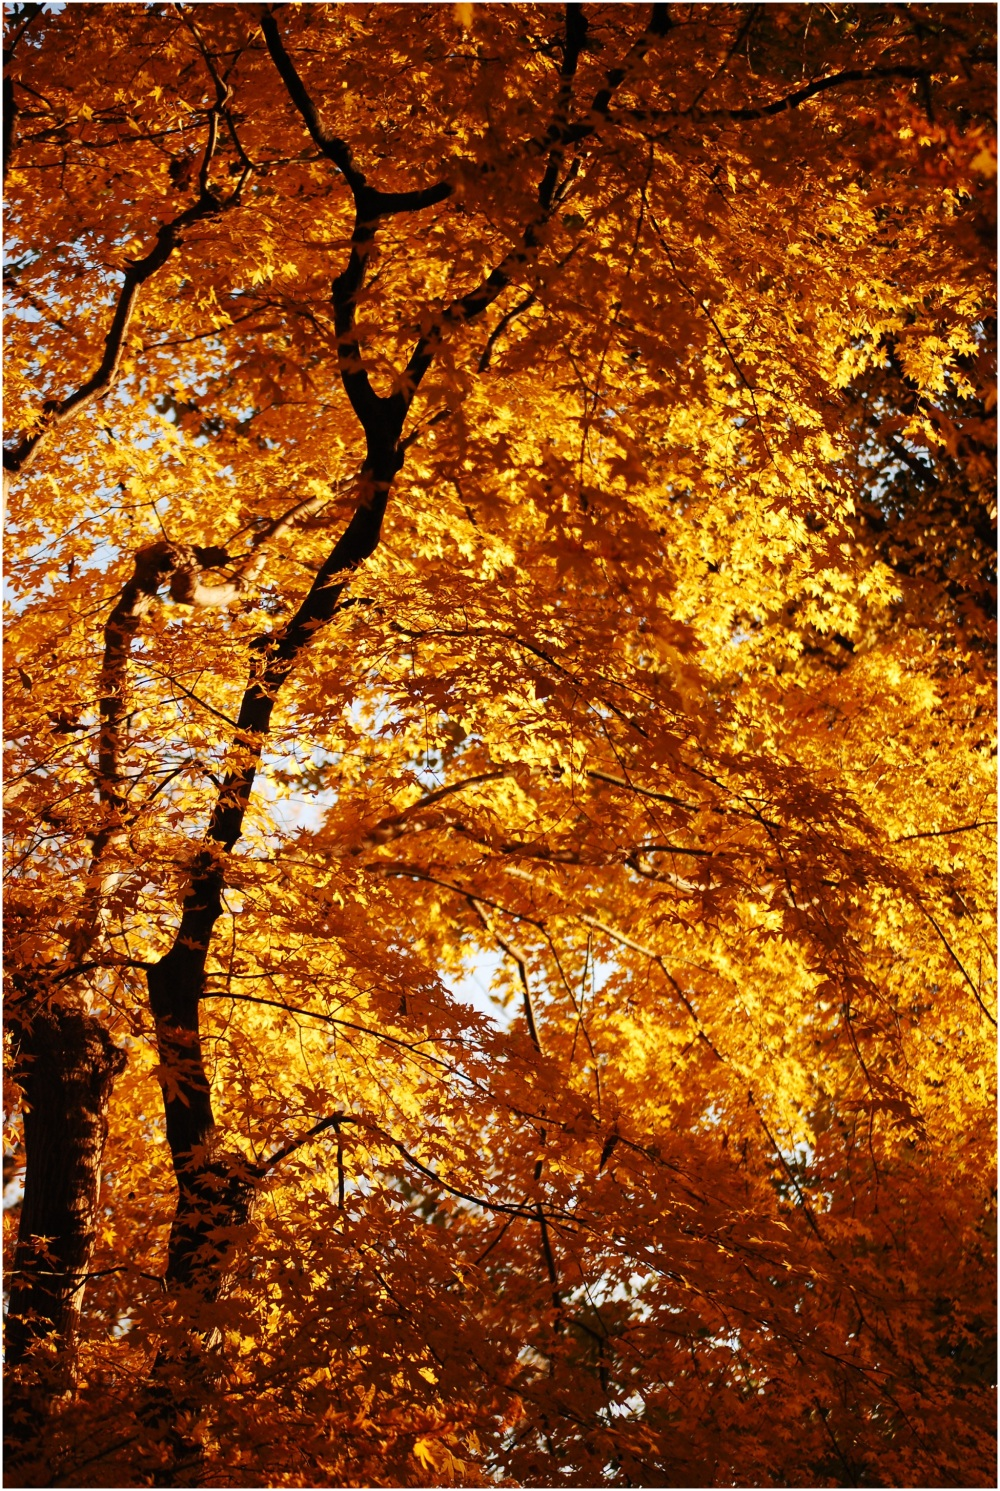 Yellow Leaves of Autumn